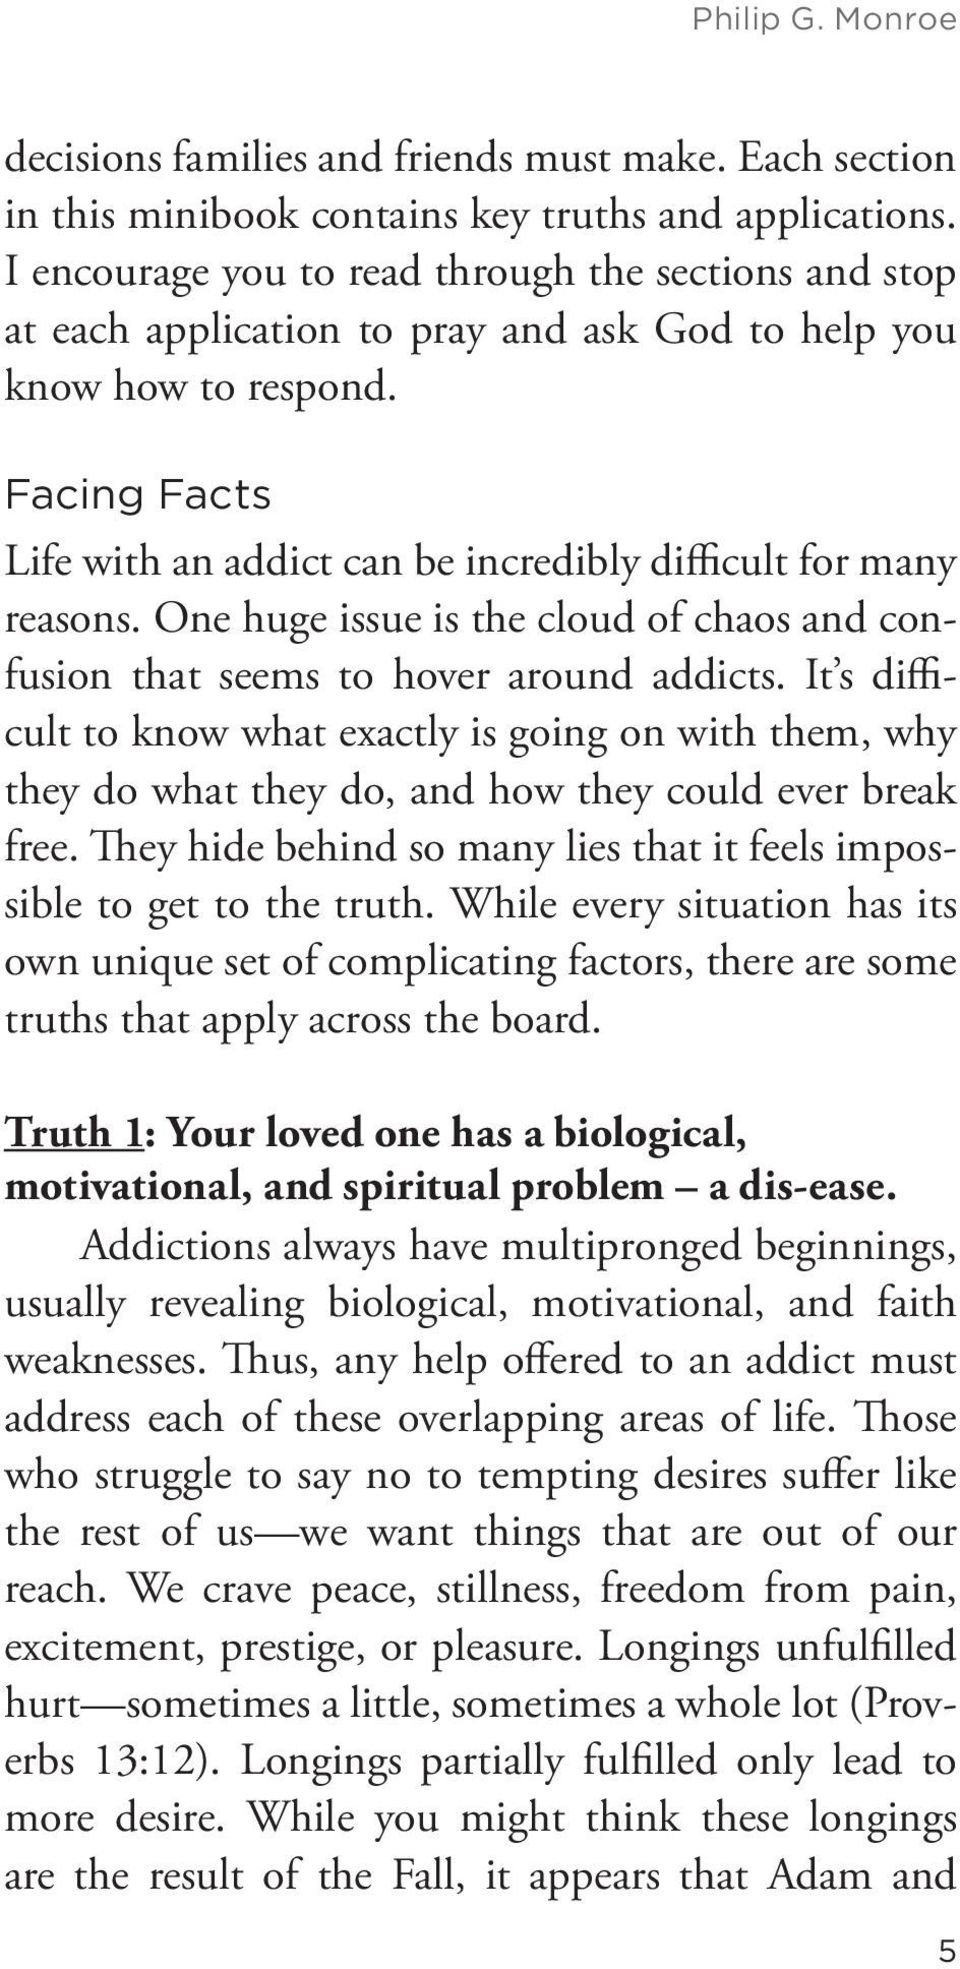 Facing Facts Life with an addict can be incredibly difficult for many reasons. One huge issue is the cloud of chaos and confusion that seems to hover around addicts.